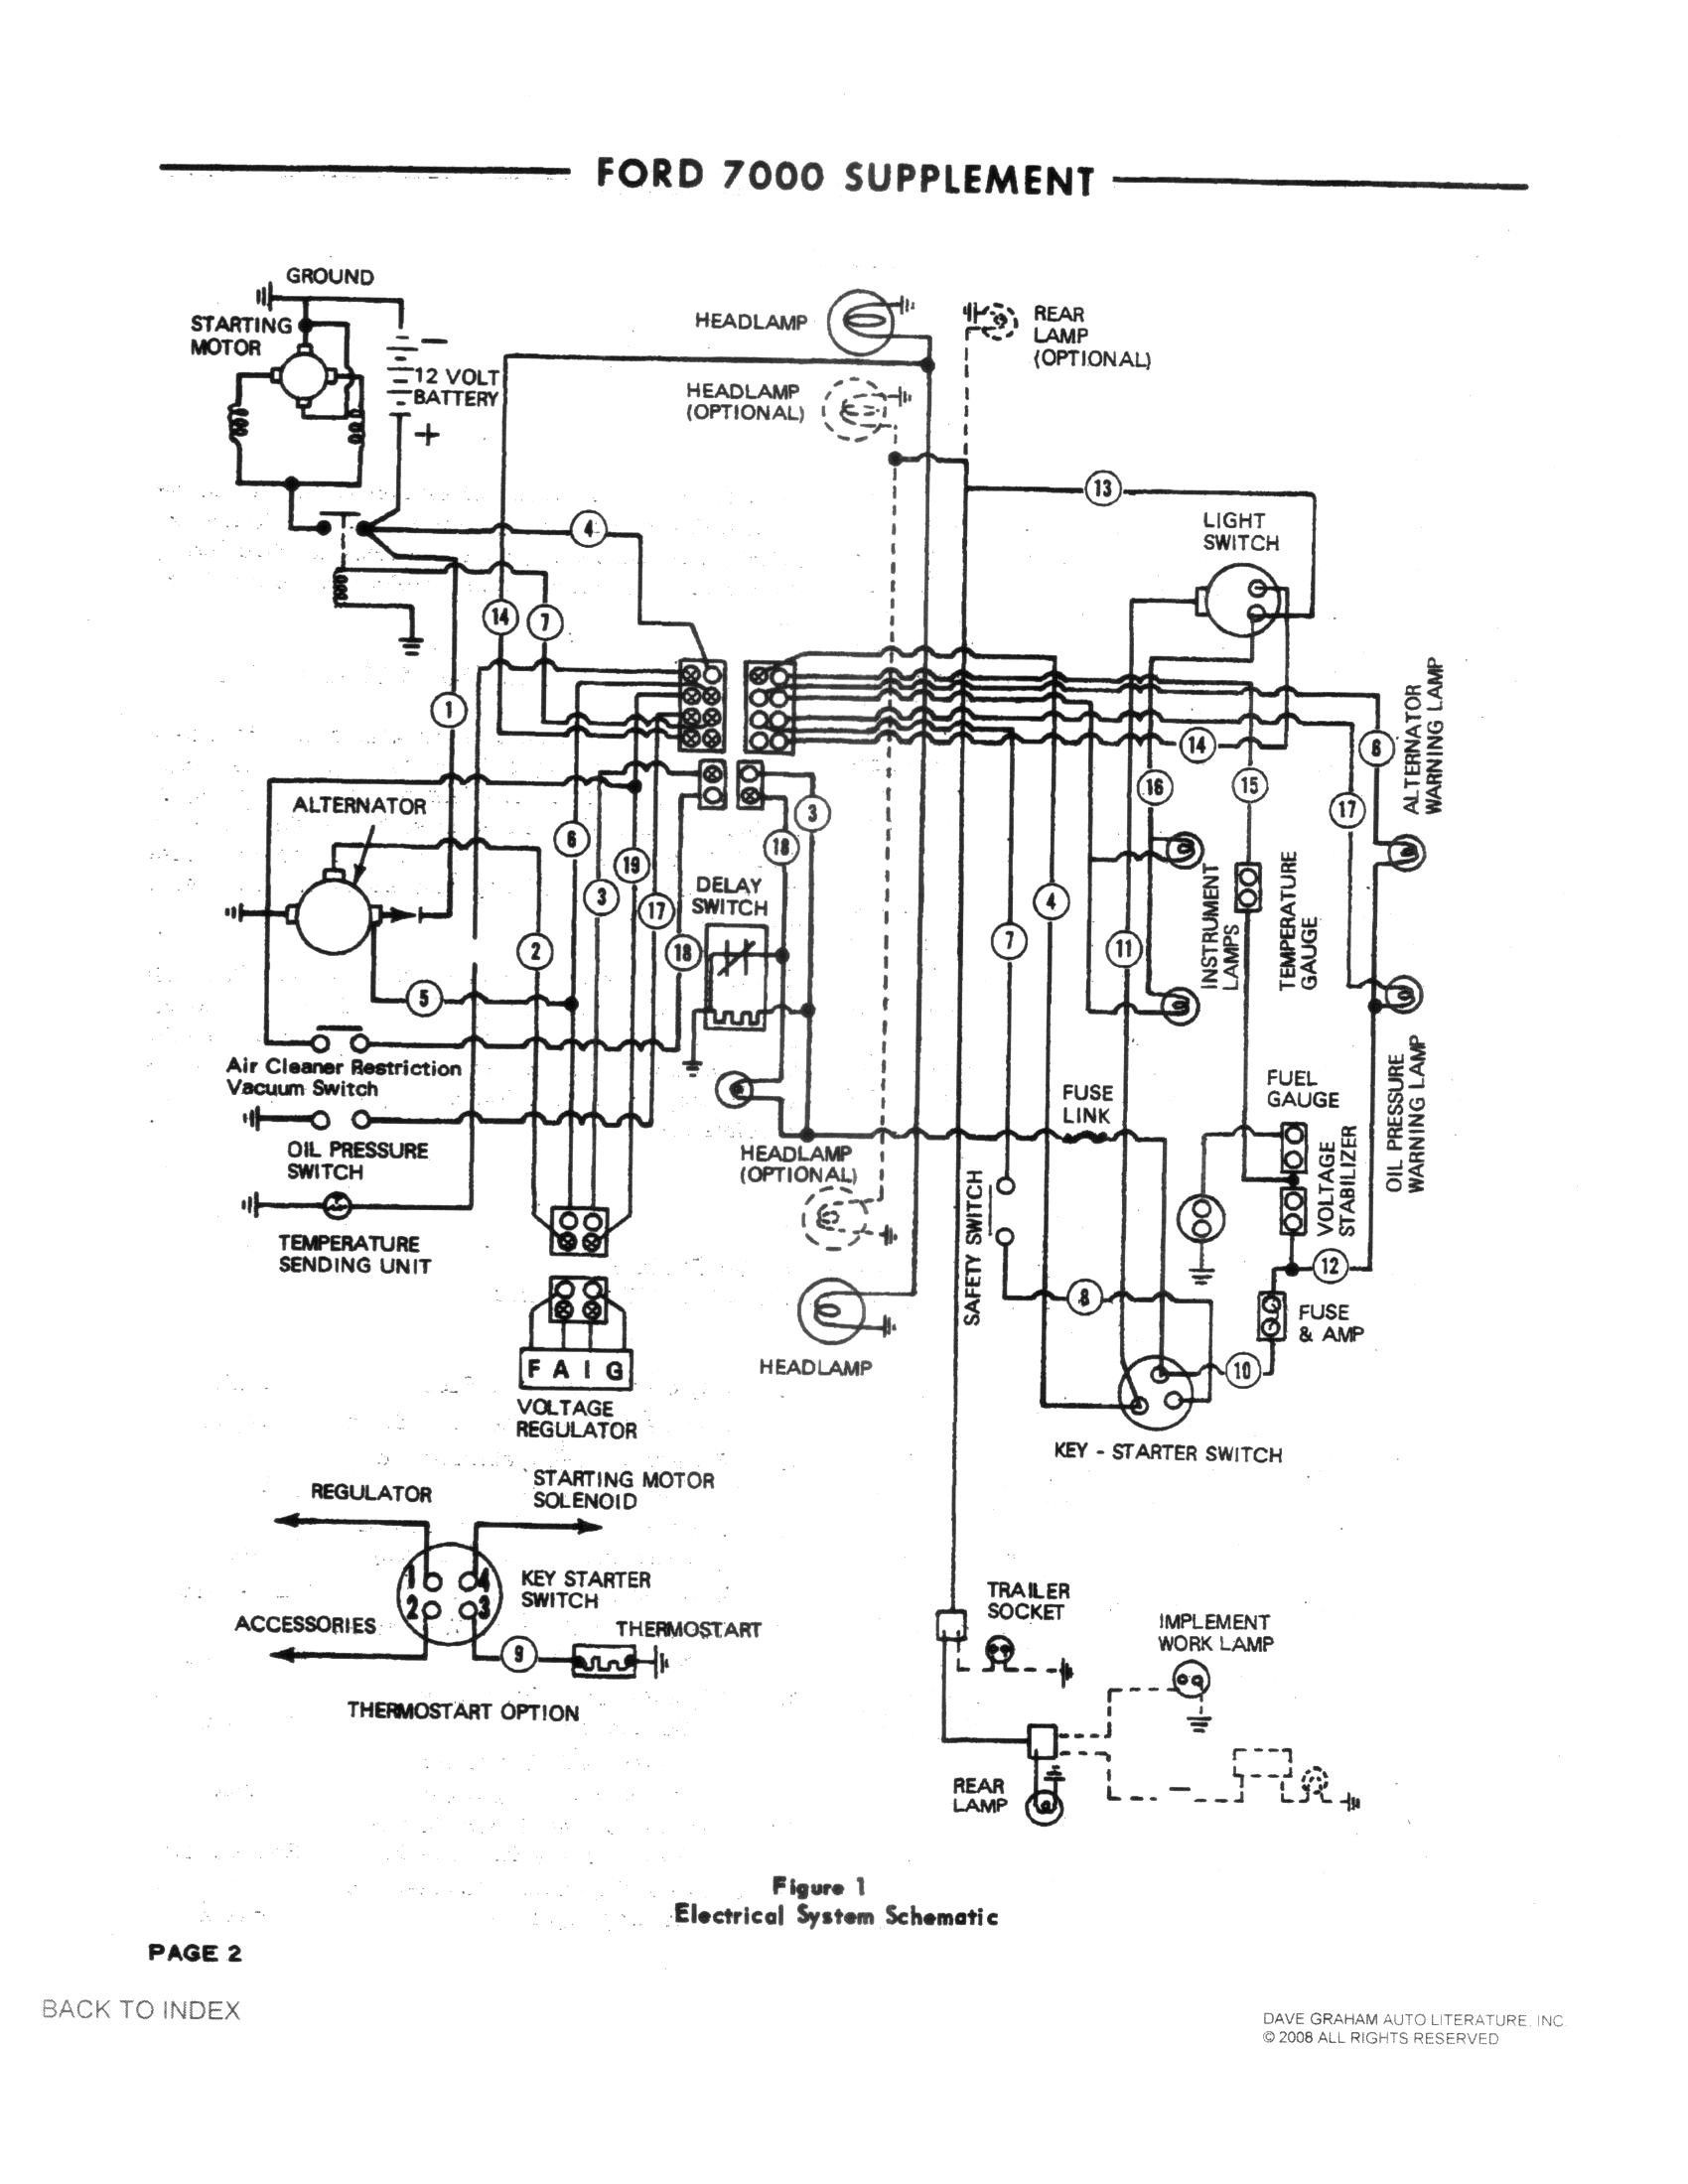 Pin on Diagram Sample Jd Motorola Alternator Wiring Diagram on